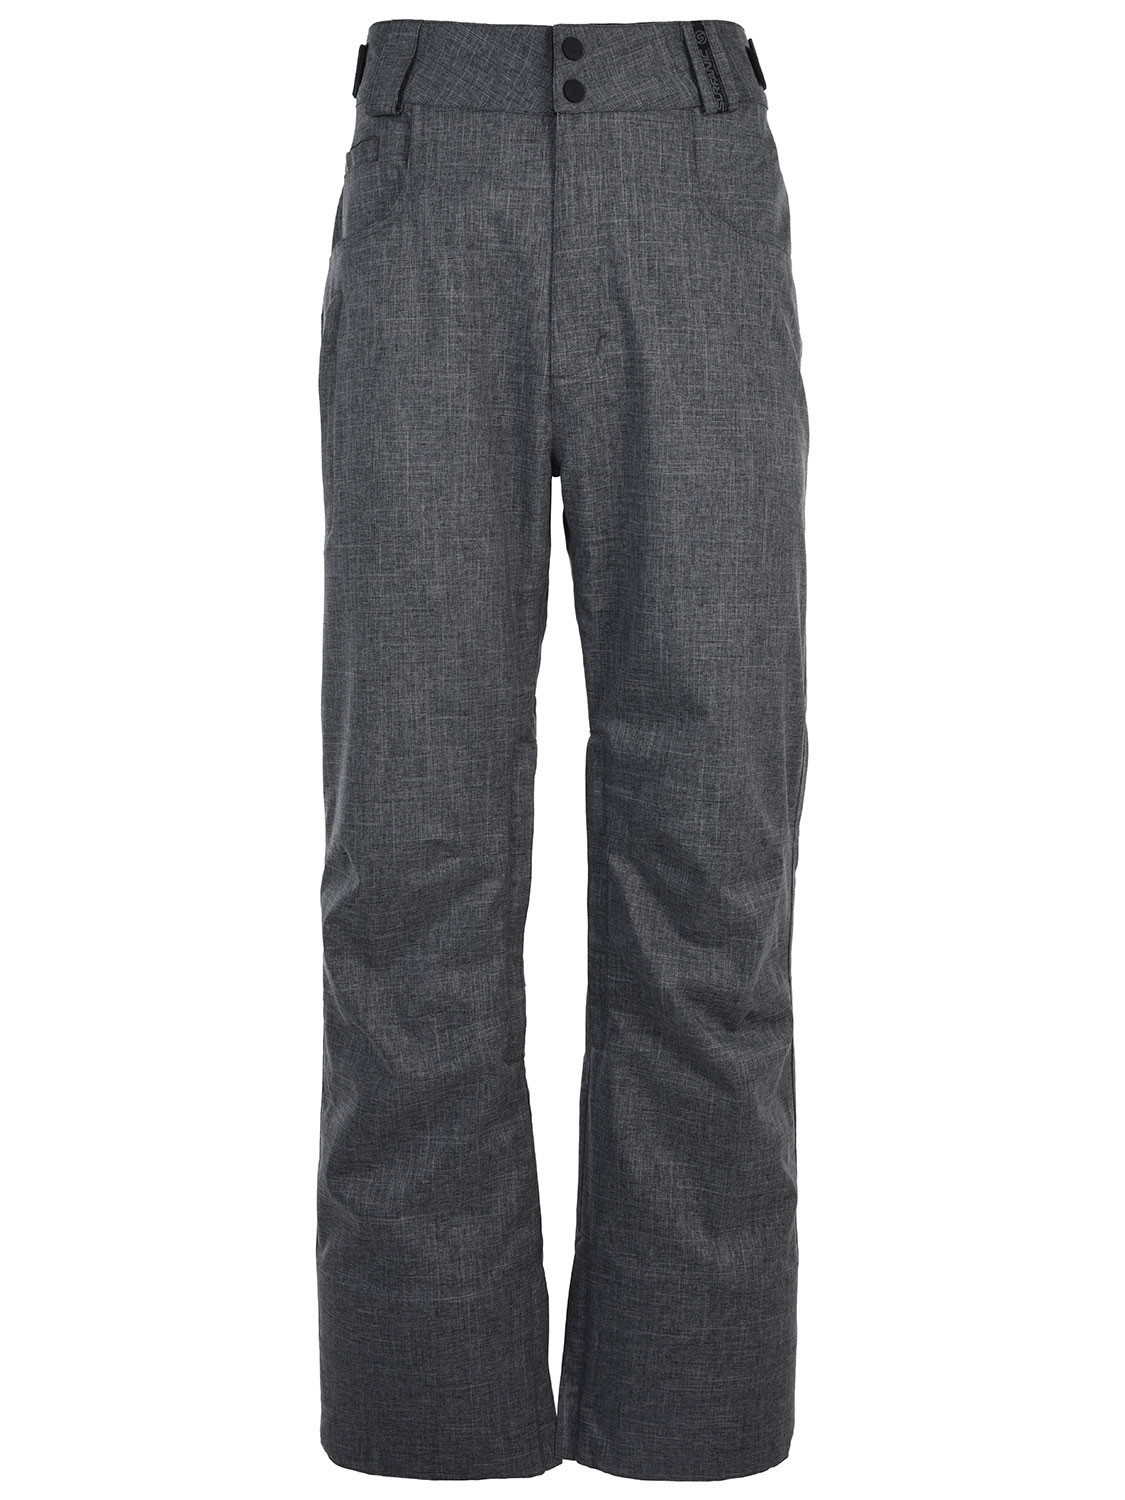 Shady Surftex Ski Pant